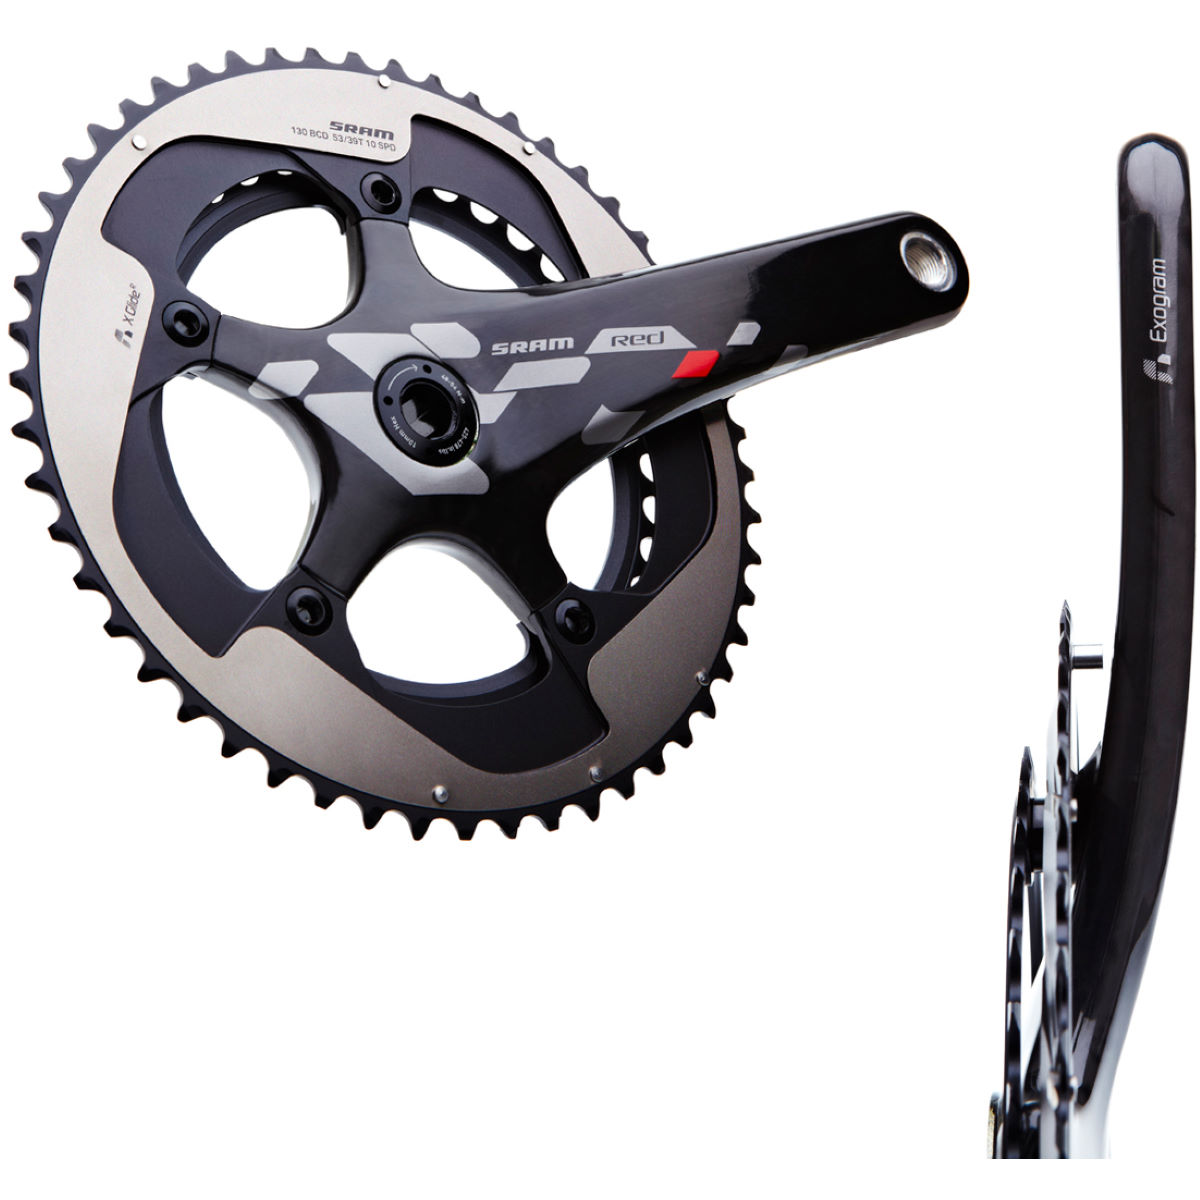 Sram red 2012 chainset zoom